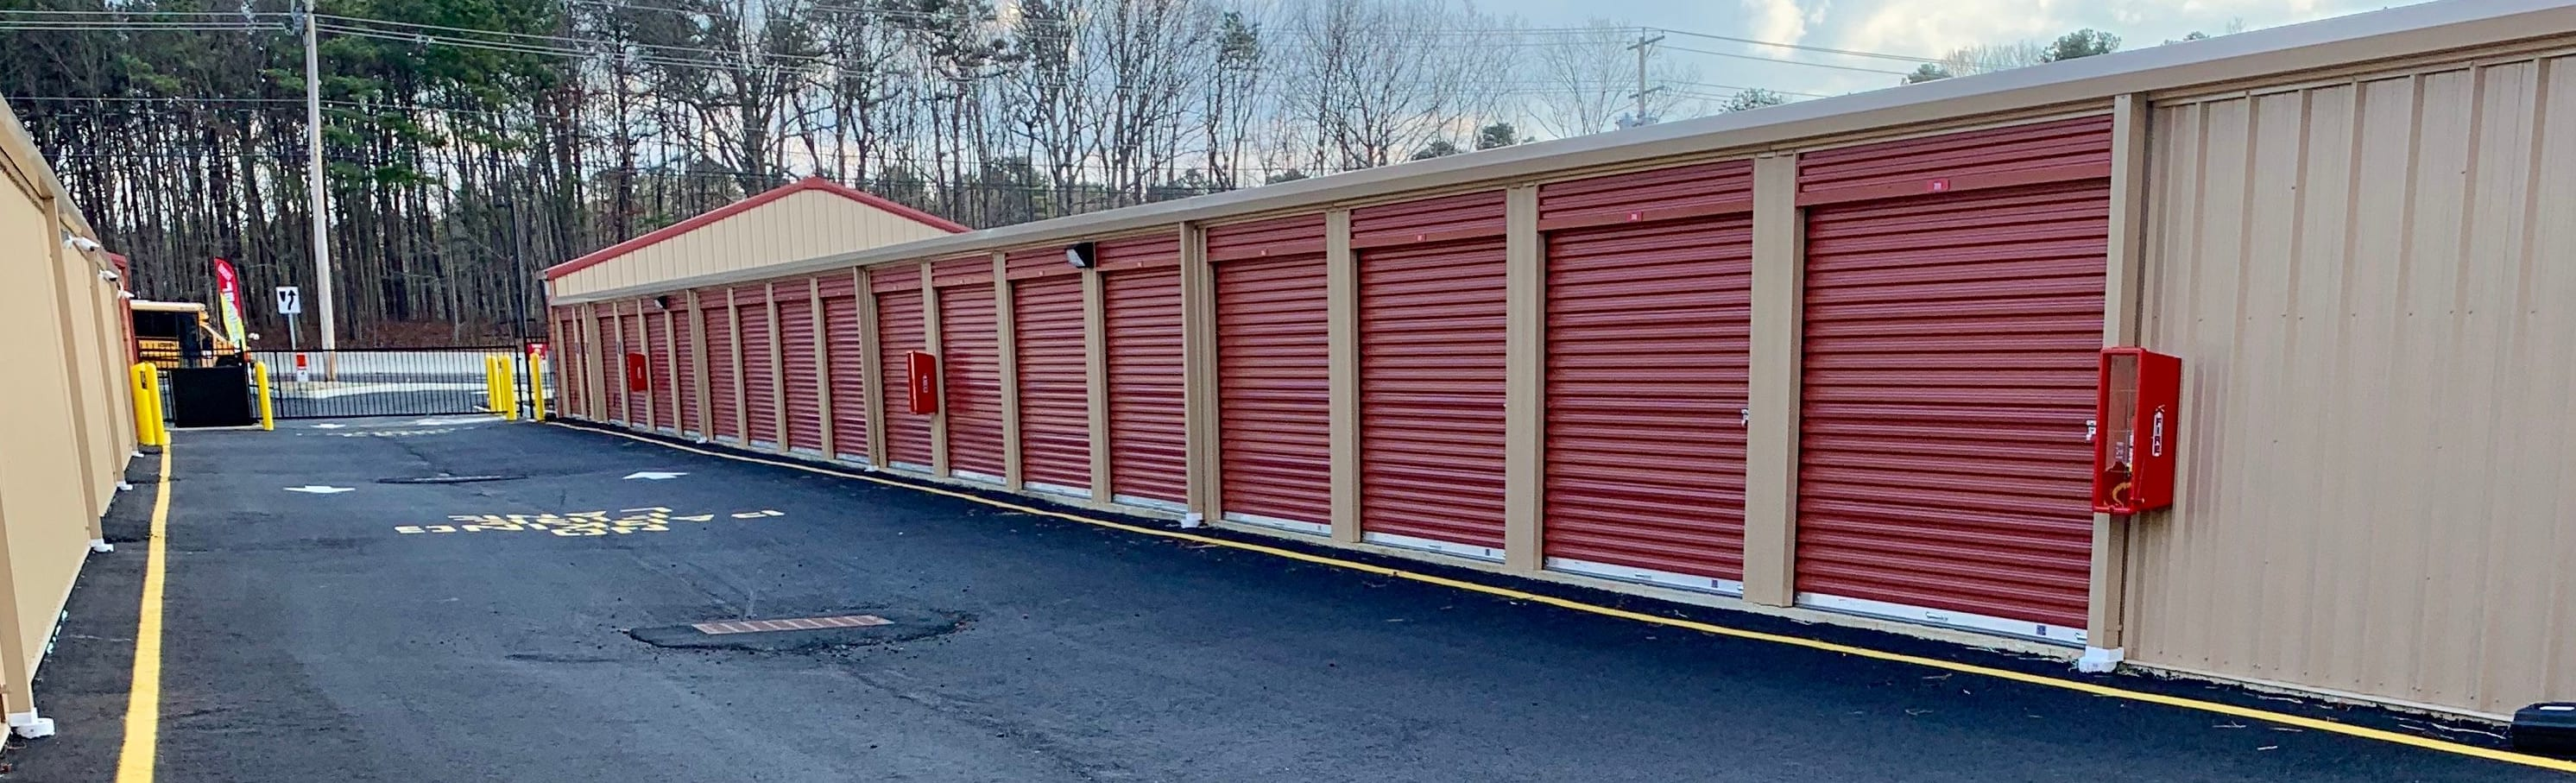 Contact Storage Authority Monmouth Rd in Millstone Township, New Jersey